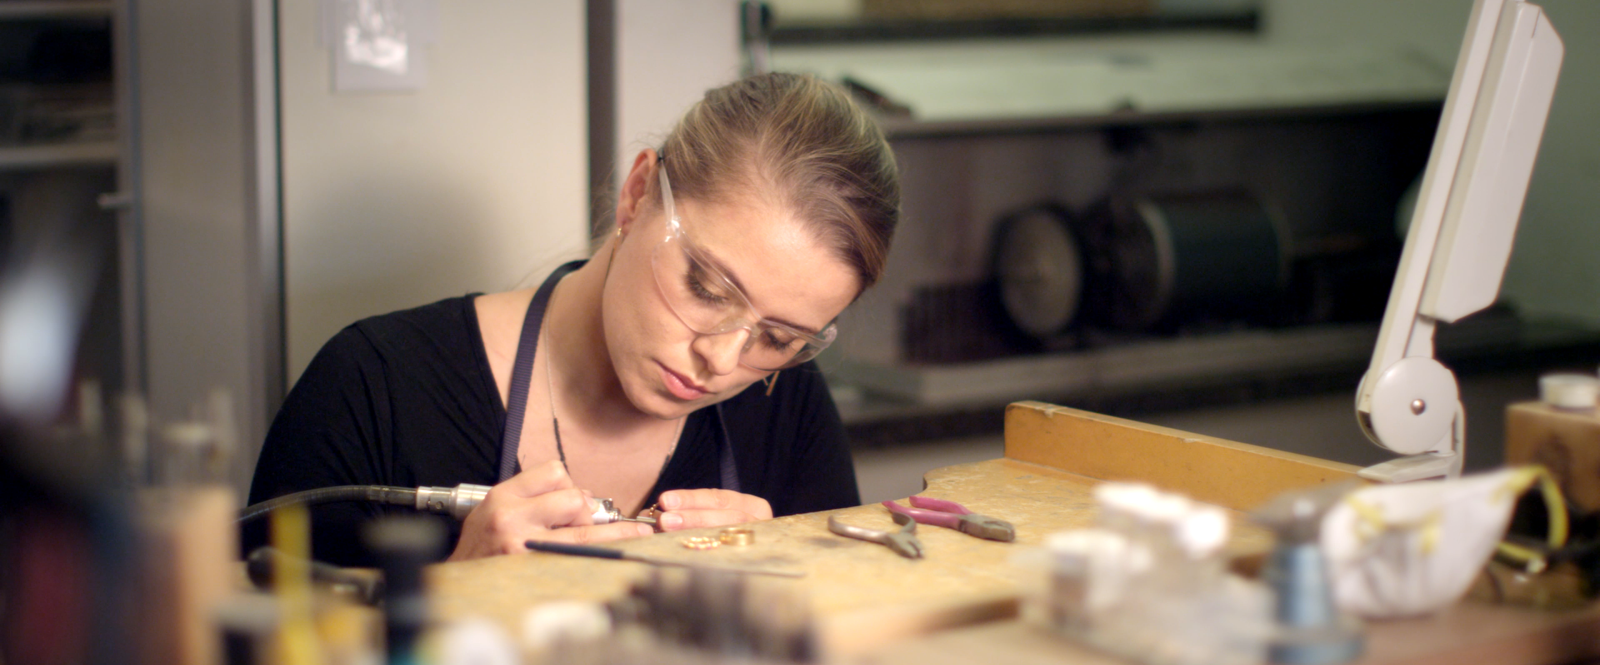 Jeweller making rings at her workstation